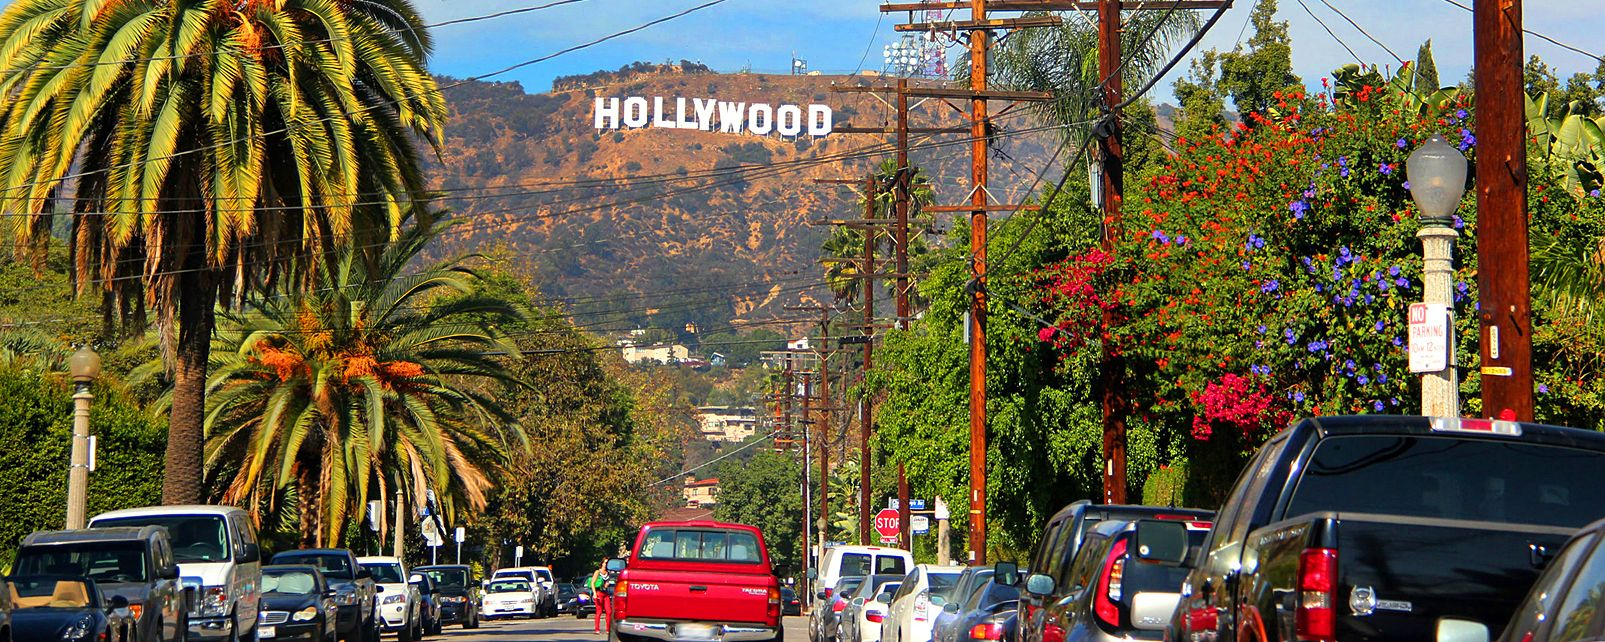 hollywood-paysage - Photo